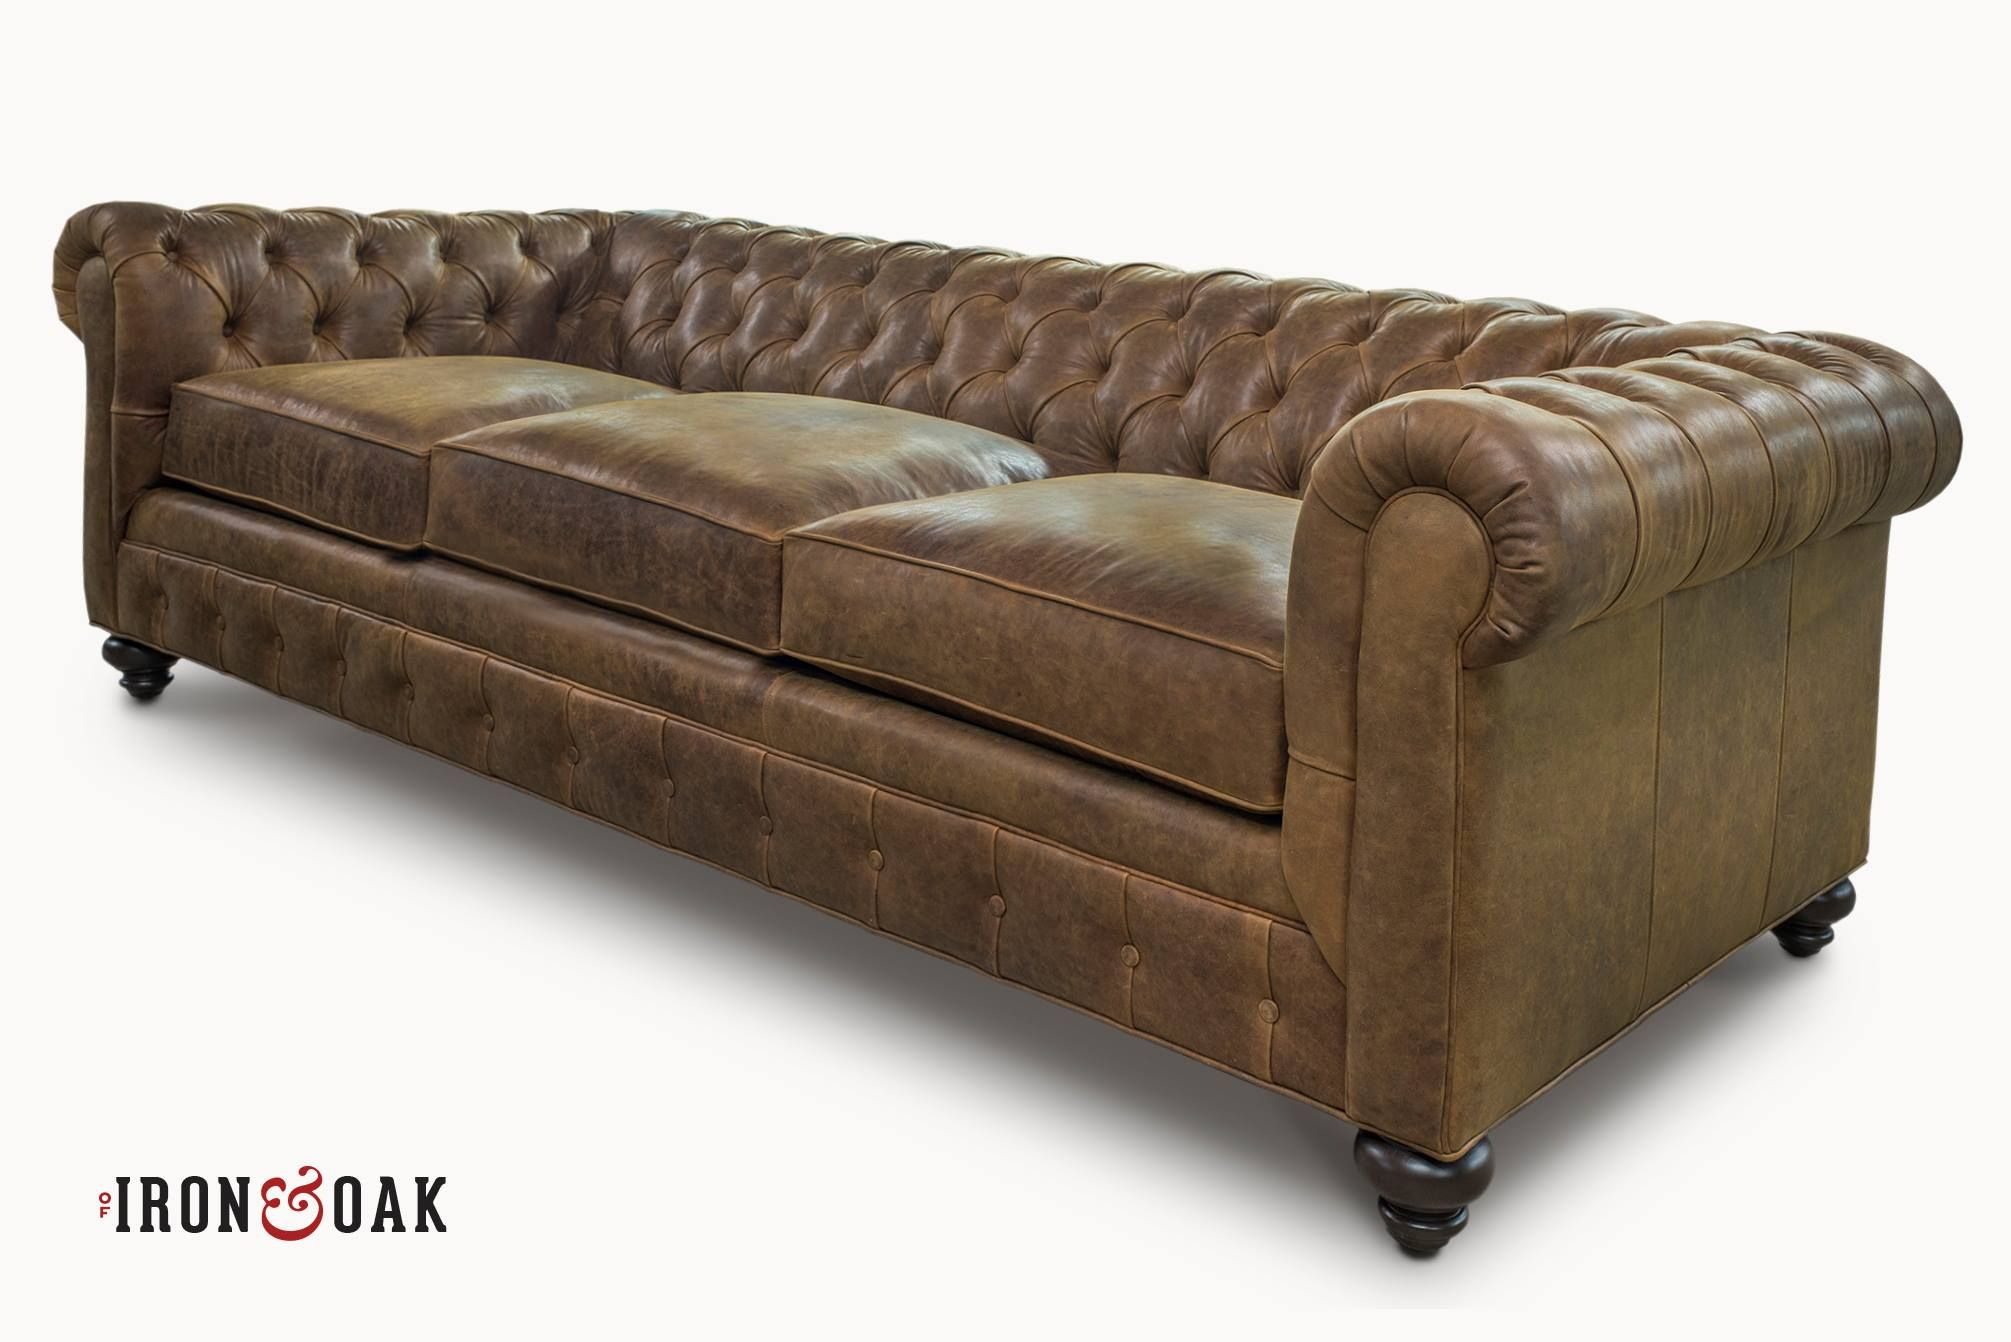 The Irving Custom Traditional Chesterfield Sofas More Classic